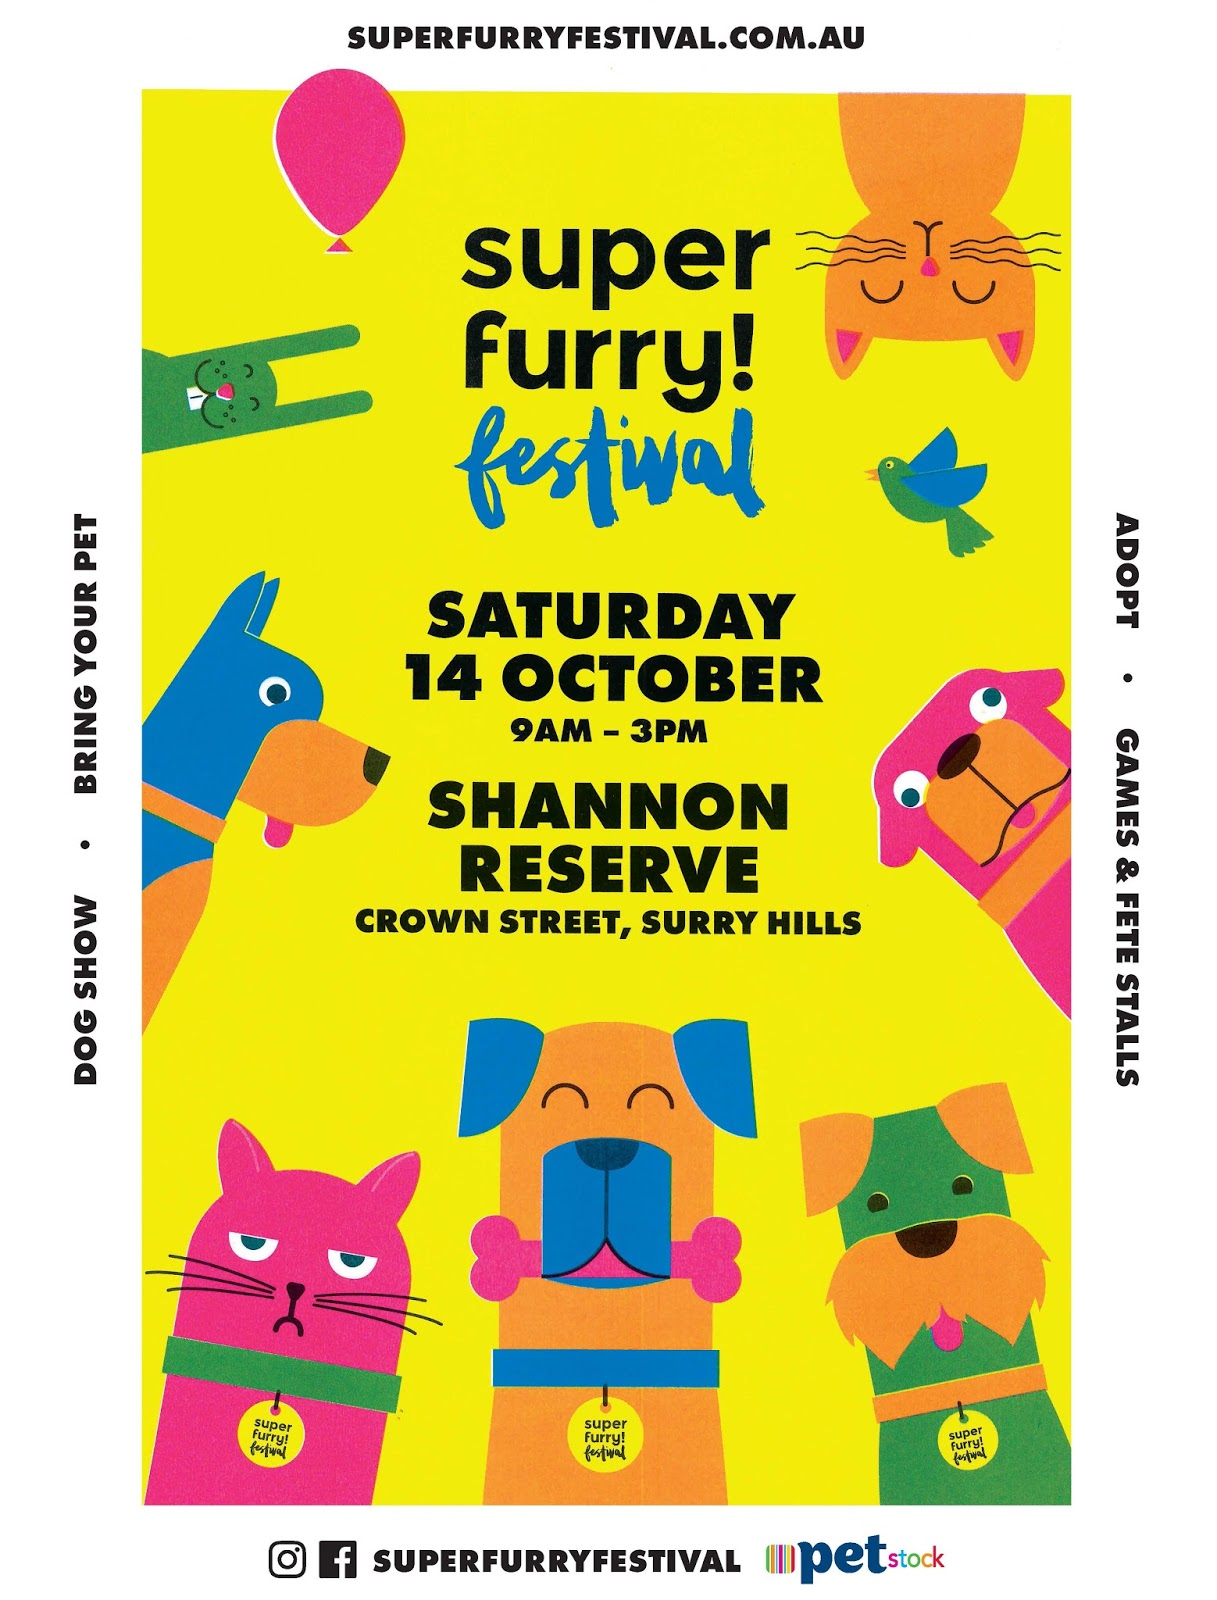 Super Furry Festival for Dogs 2017 - Official Poster